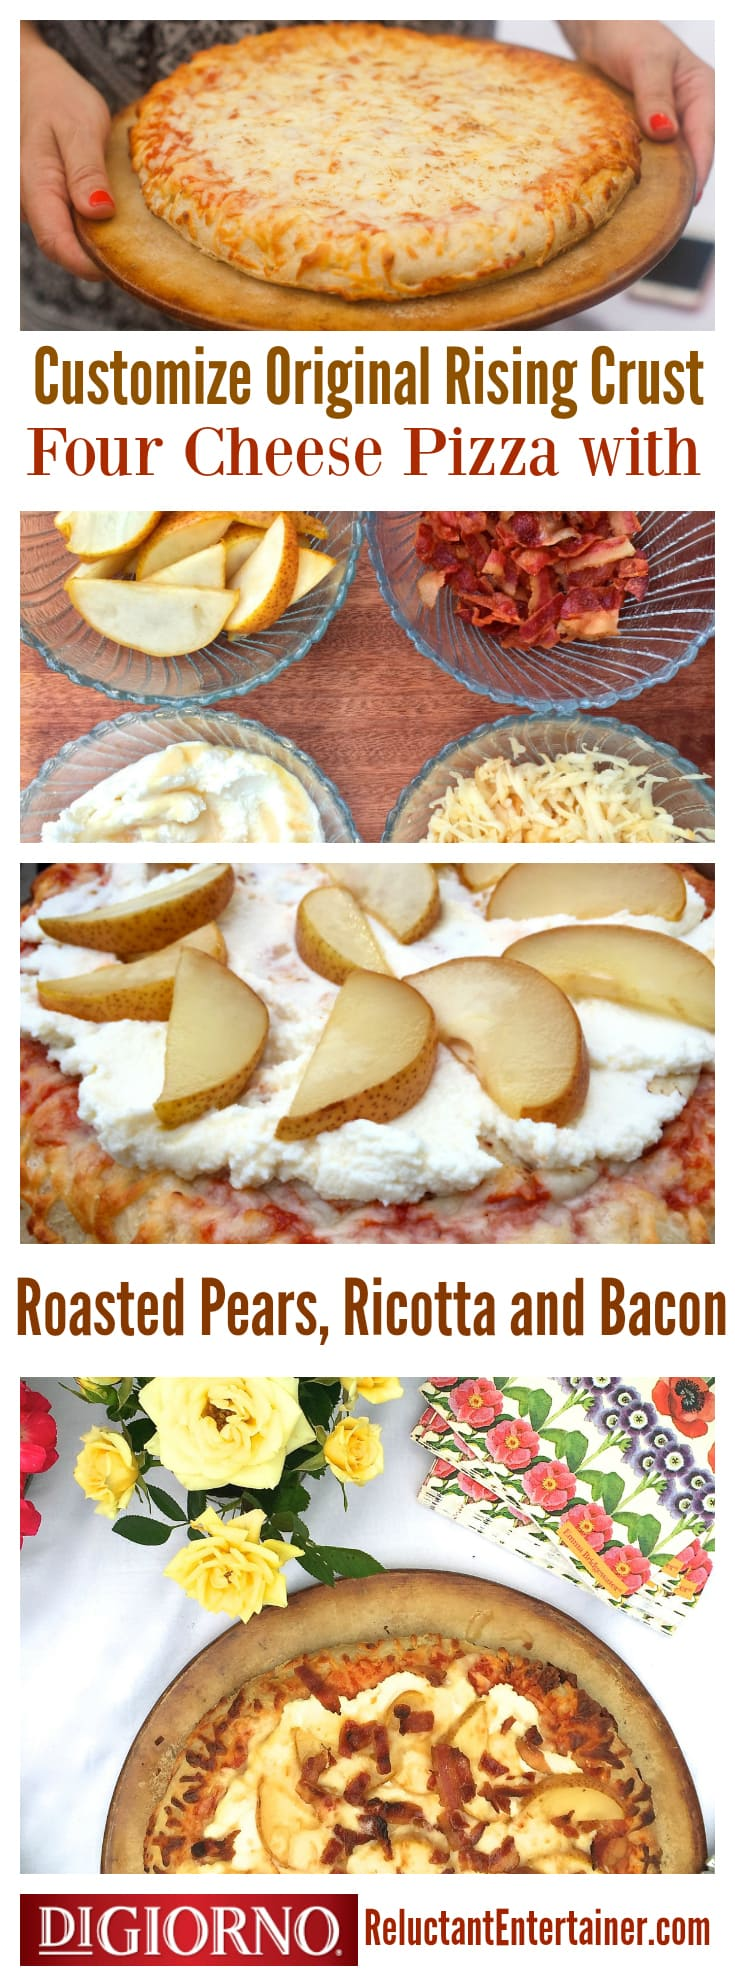 Today I'm sharing how to customize your own DIGIORNO pizza for a weekend gathering, with ricotta and pears, for a Roasted Pear Ricotta Pizza!